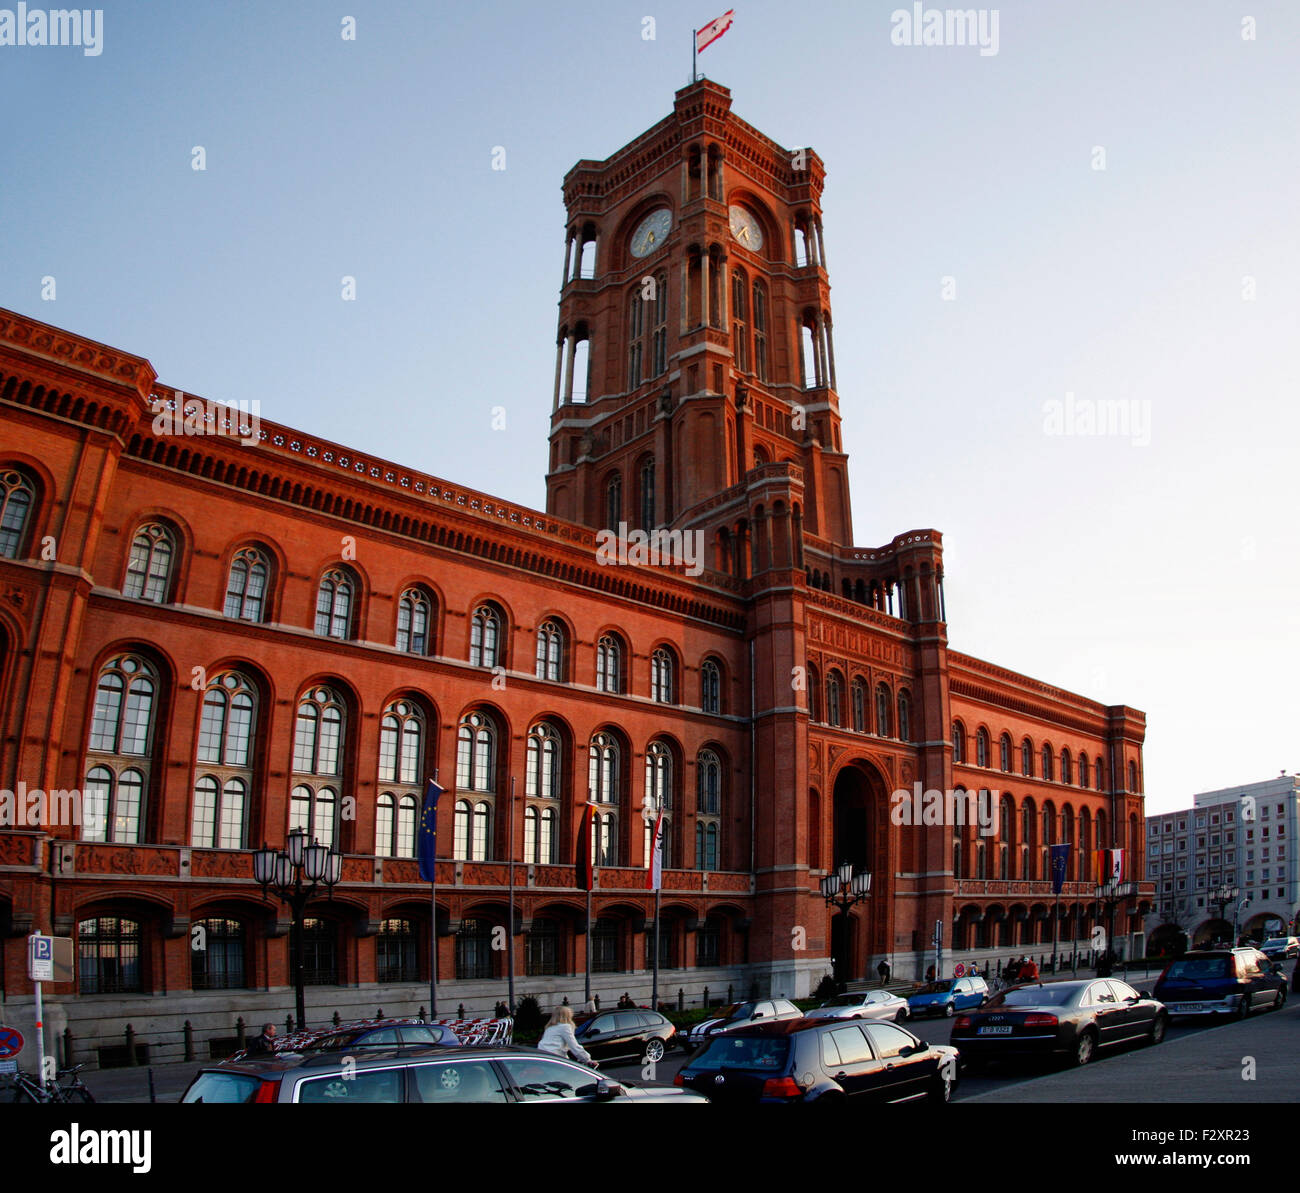 Panorama: Rotes Rathaus, Berlin-Mitte. - Stock Image